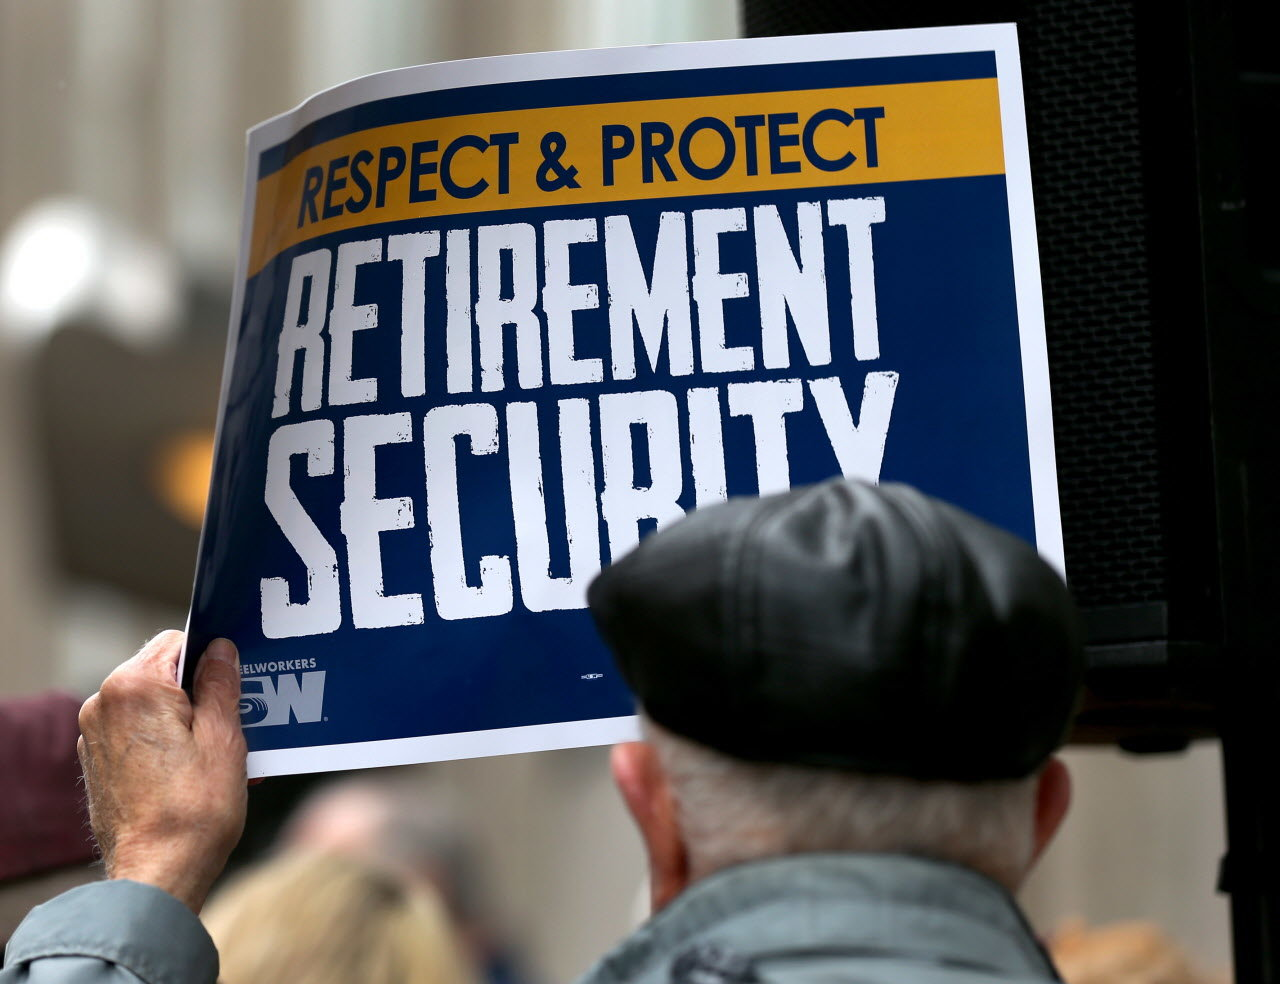 Social Security & Retirement